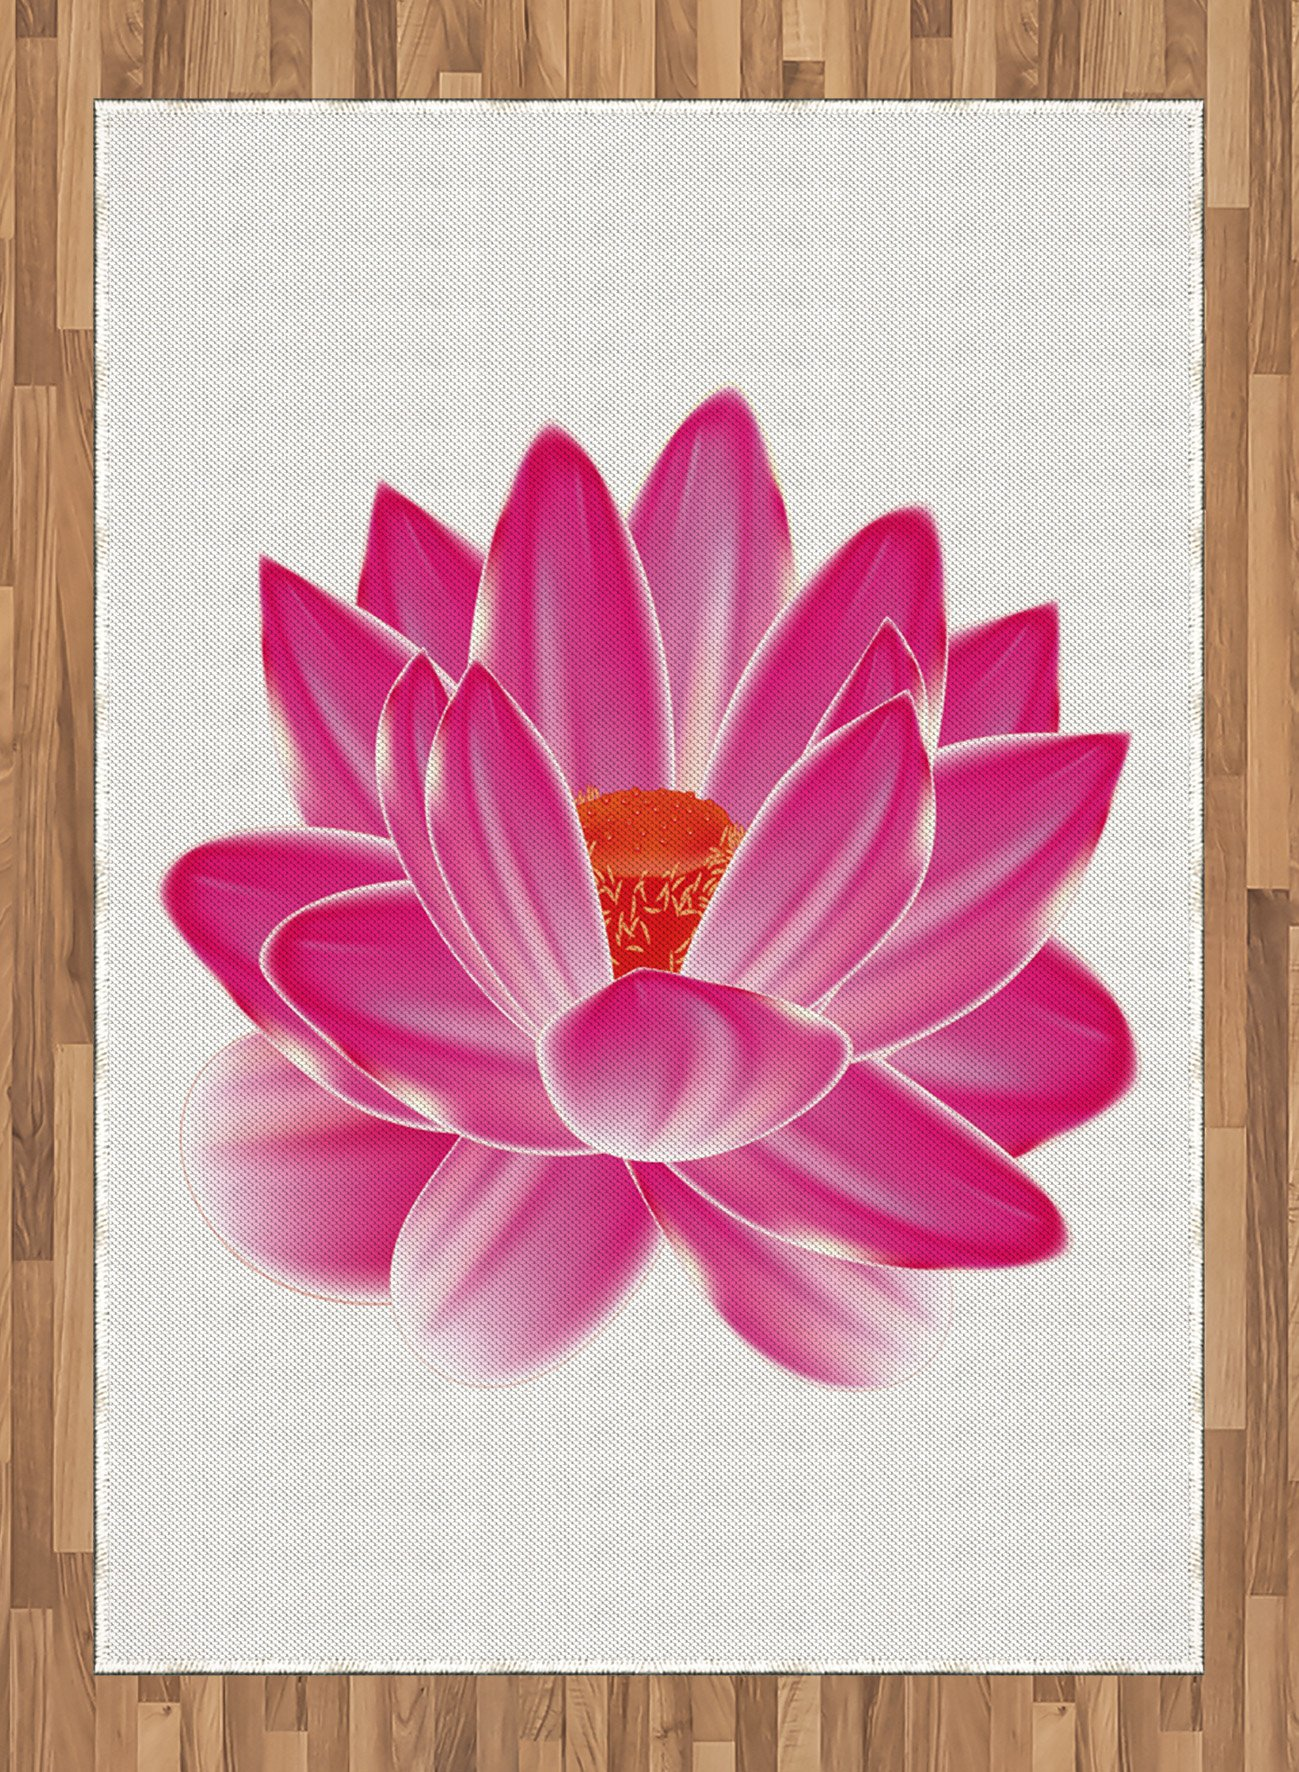 Lotus Area Rug by Lunarable, Vibrant Lotus Flower Pattern Spa Zen Yoga Asian Balance Energy Lifestyle Artsy Image, Flat Woven Accent Rug for Living Room Bedroom Dining Room, 5.2 x 7.5 FT, Magenta Red